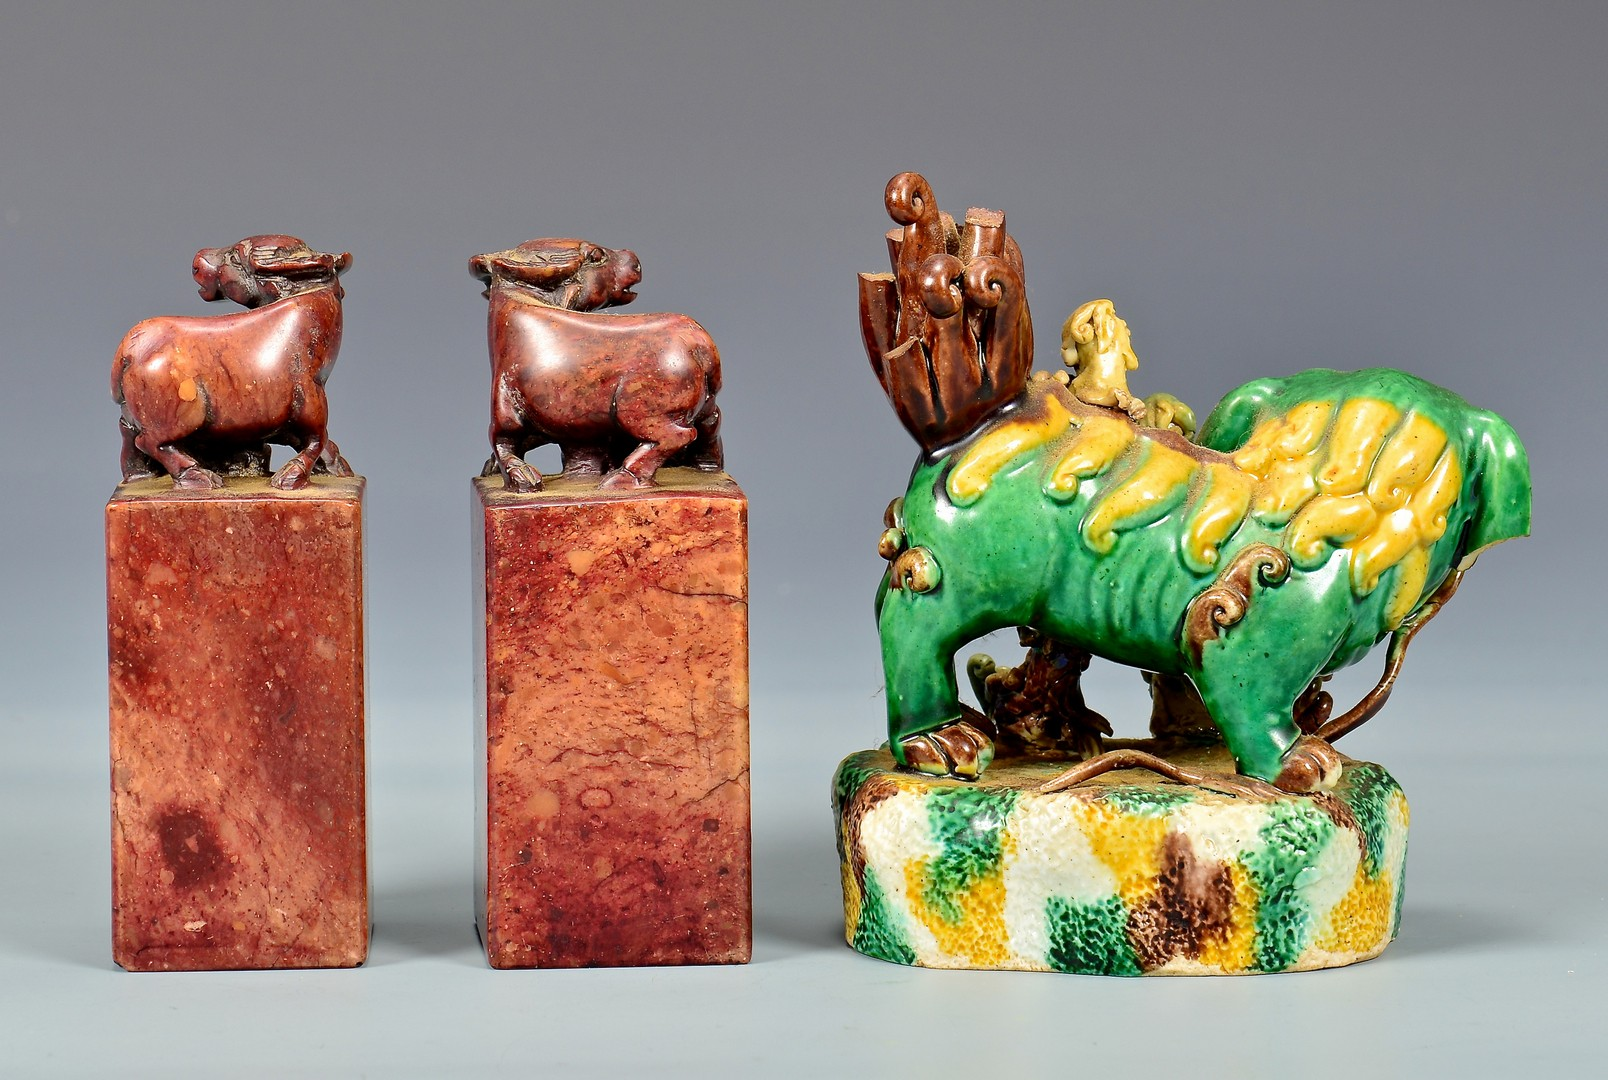 Lot 4010198: Grouping of Asian & European Decorative Items